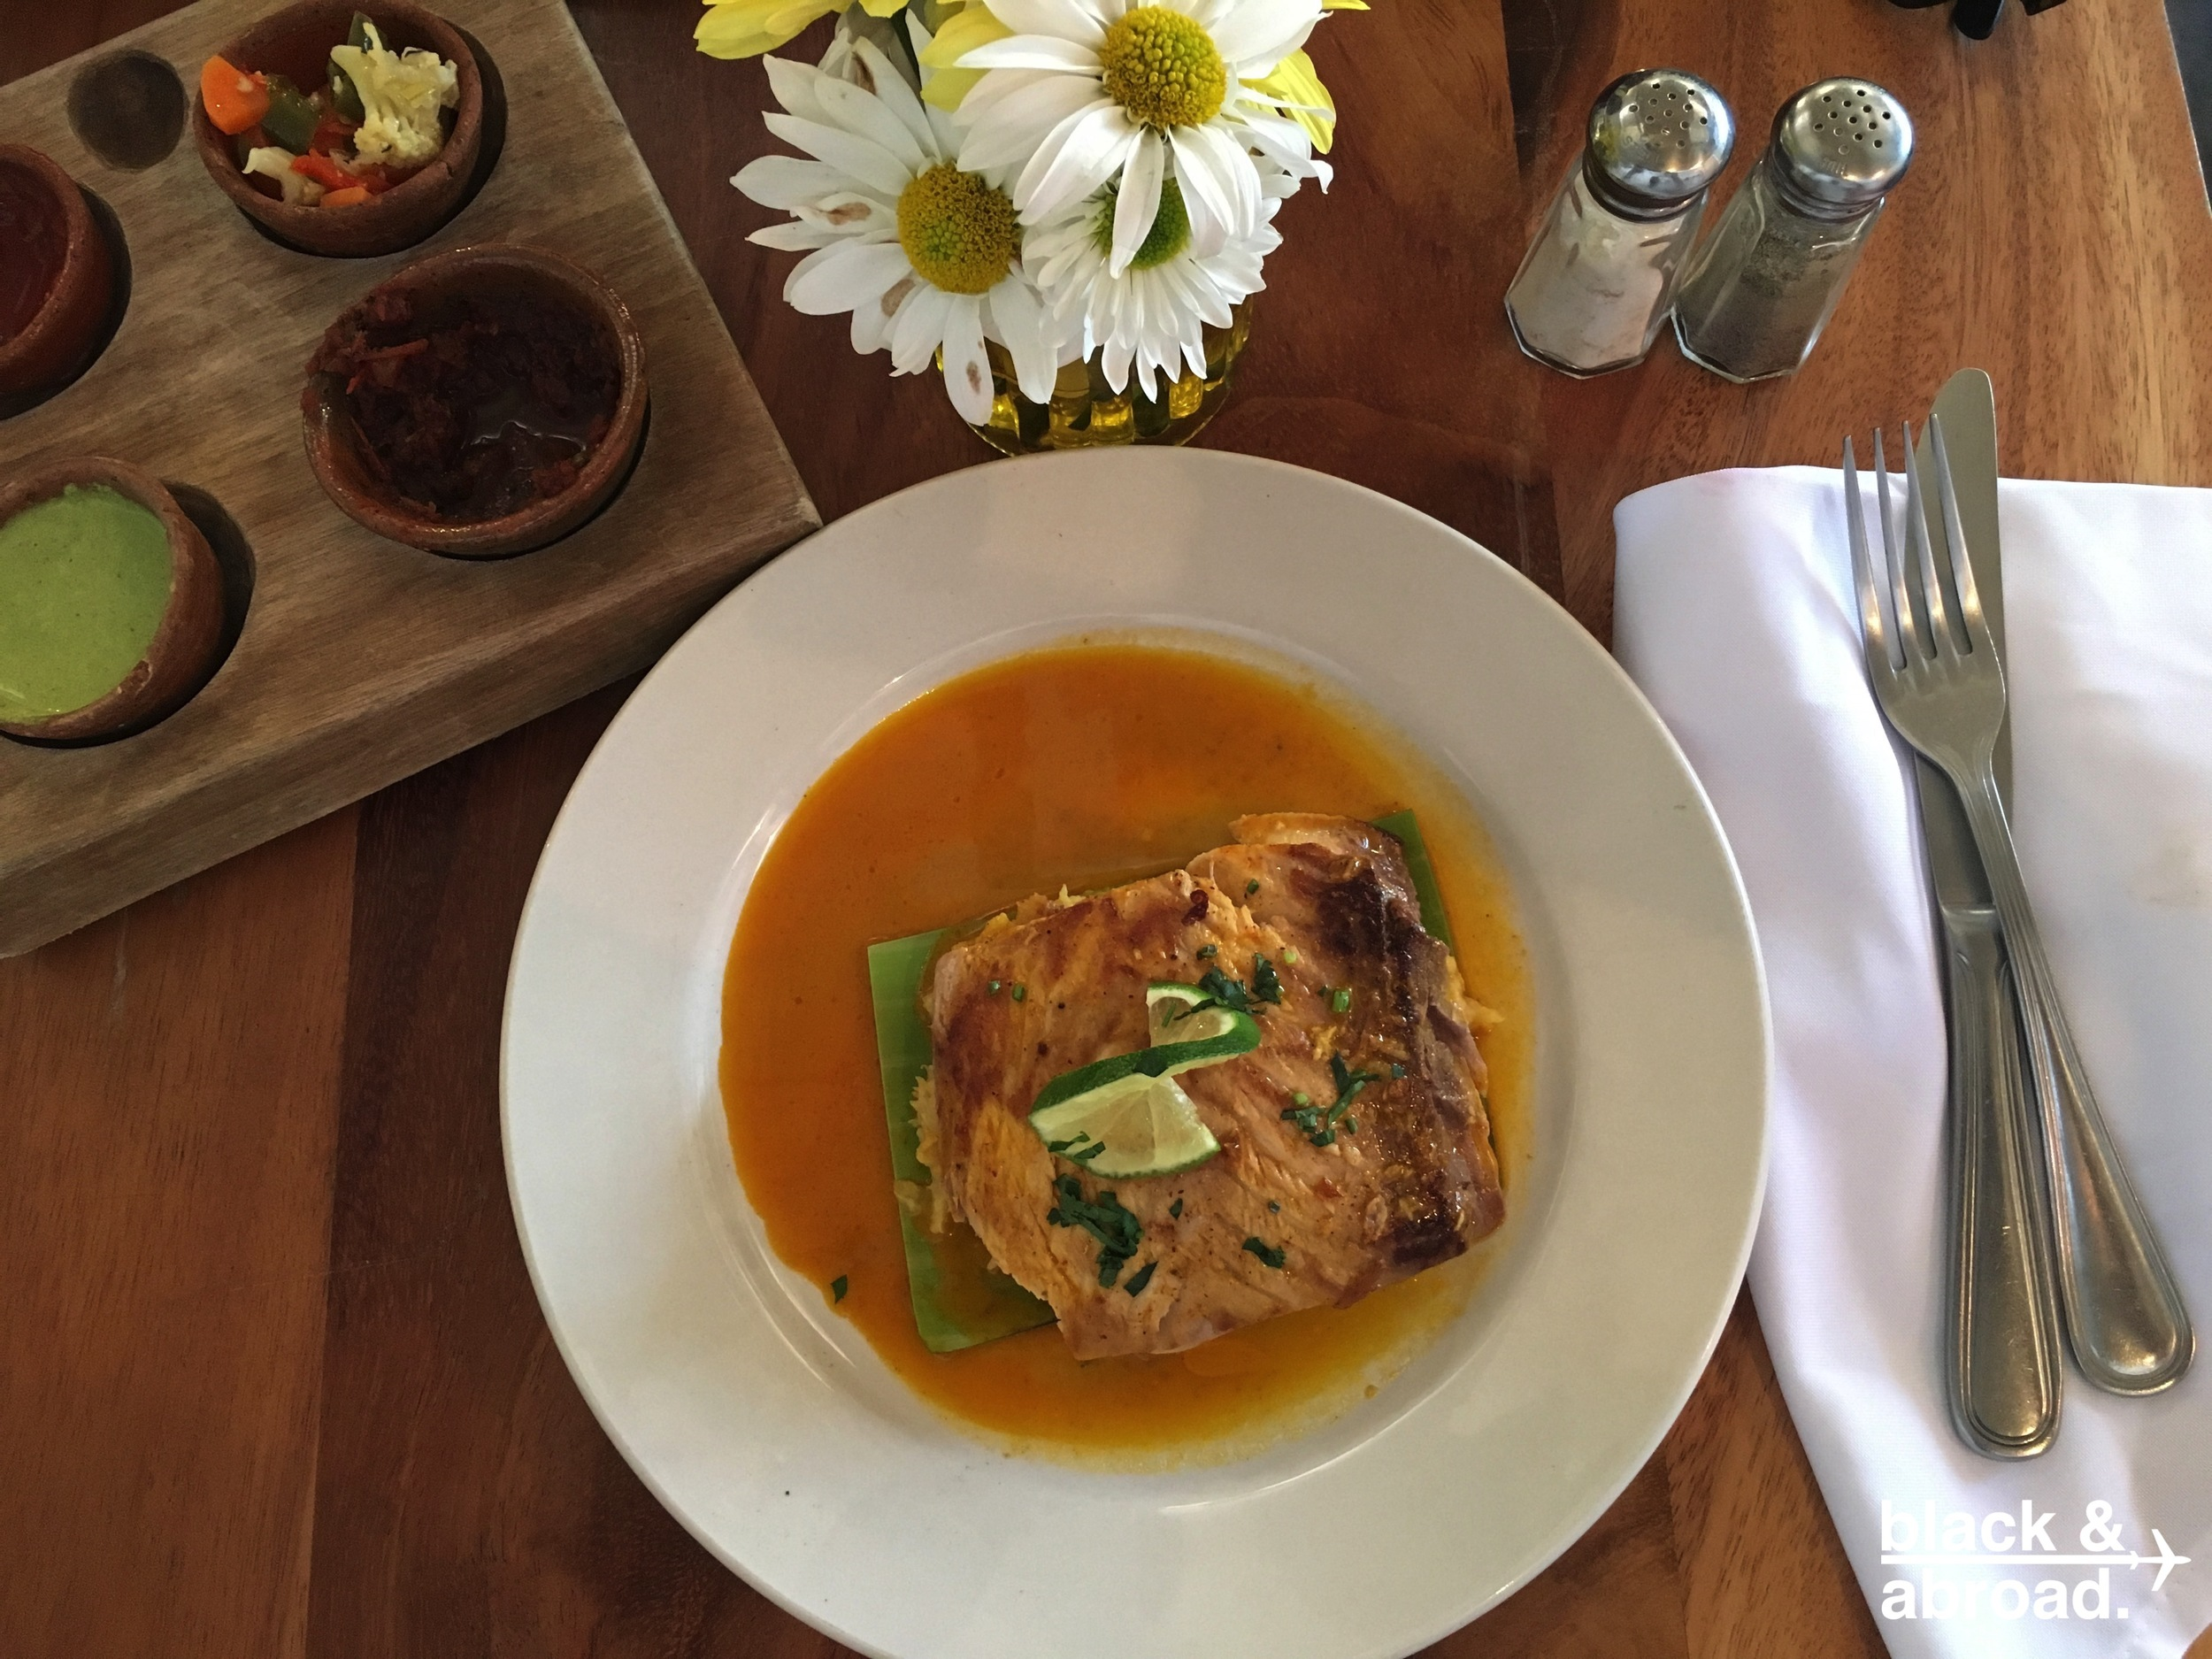 The Pescado Garifuna - Seared Mahi Mahi served atop a green plantain tamale with a coconut based tomato sauce.